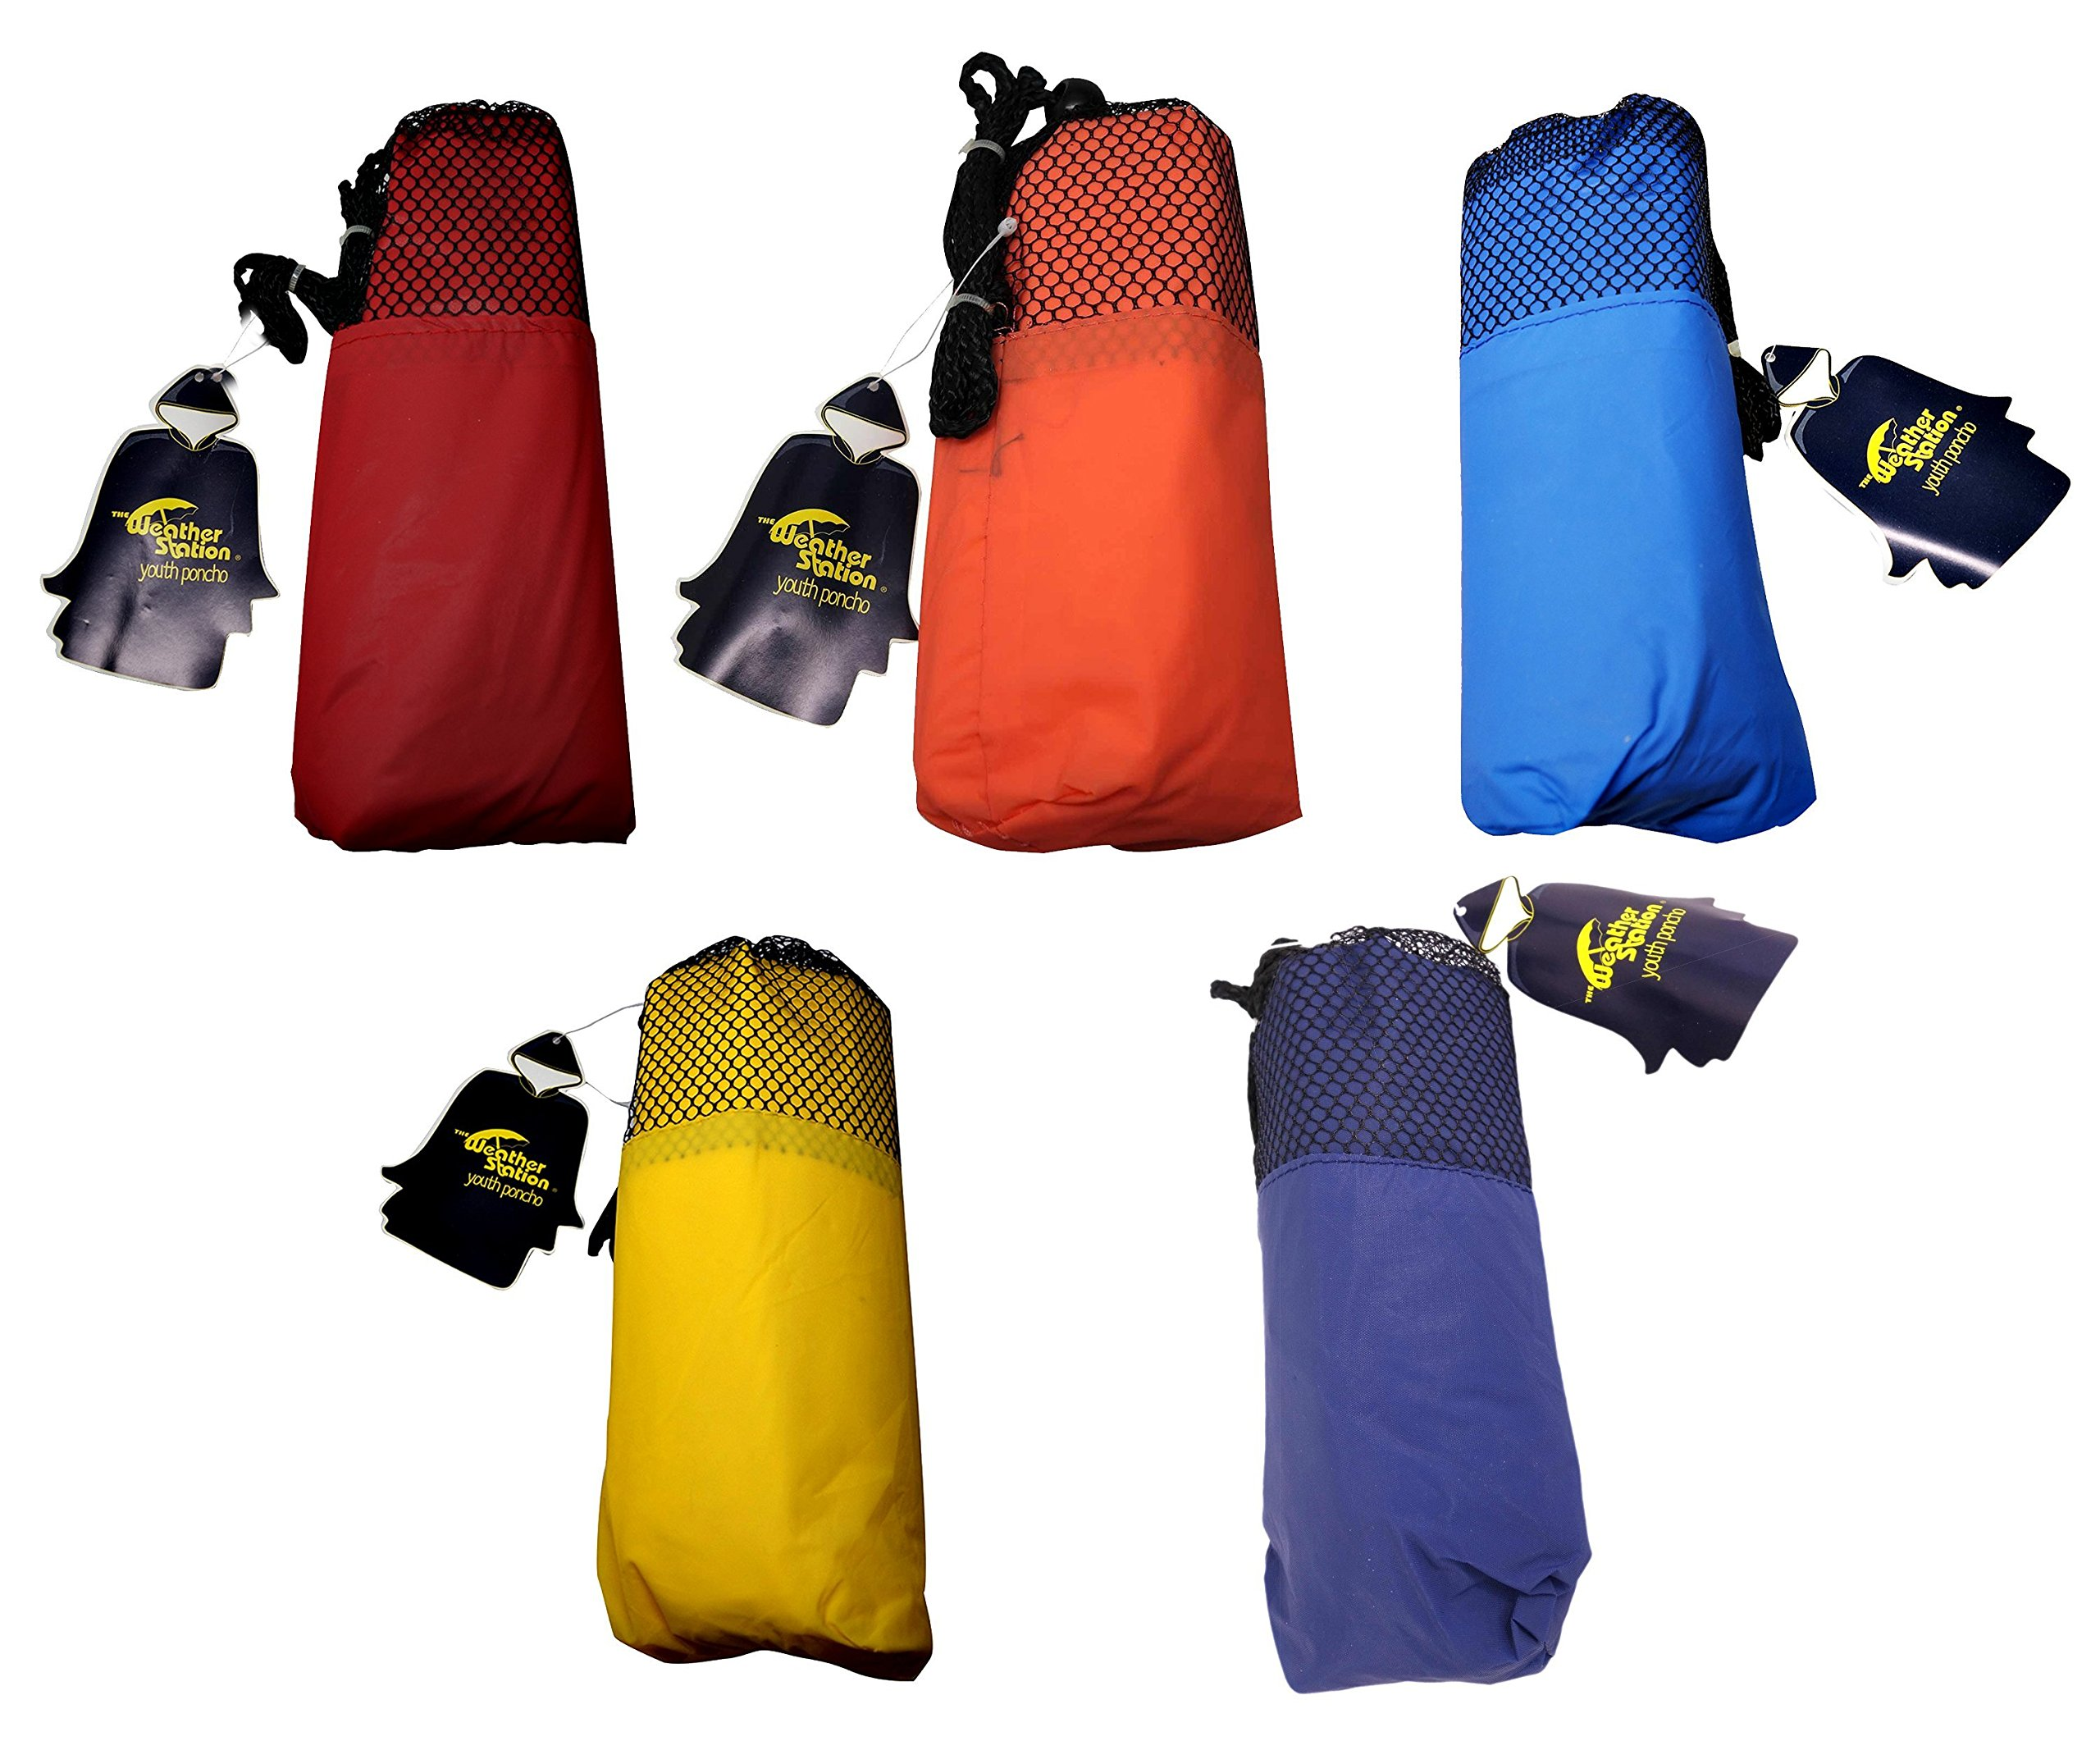 The Weather Station Children's Emergency Rain Poncho with Snaps, 45 x 72 inches by The Weather Station